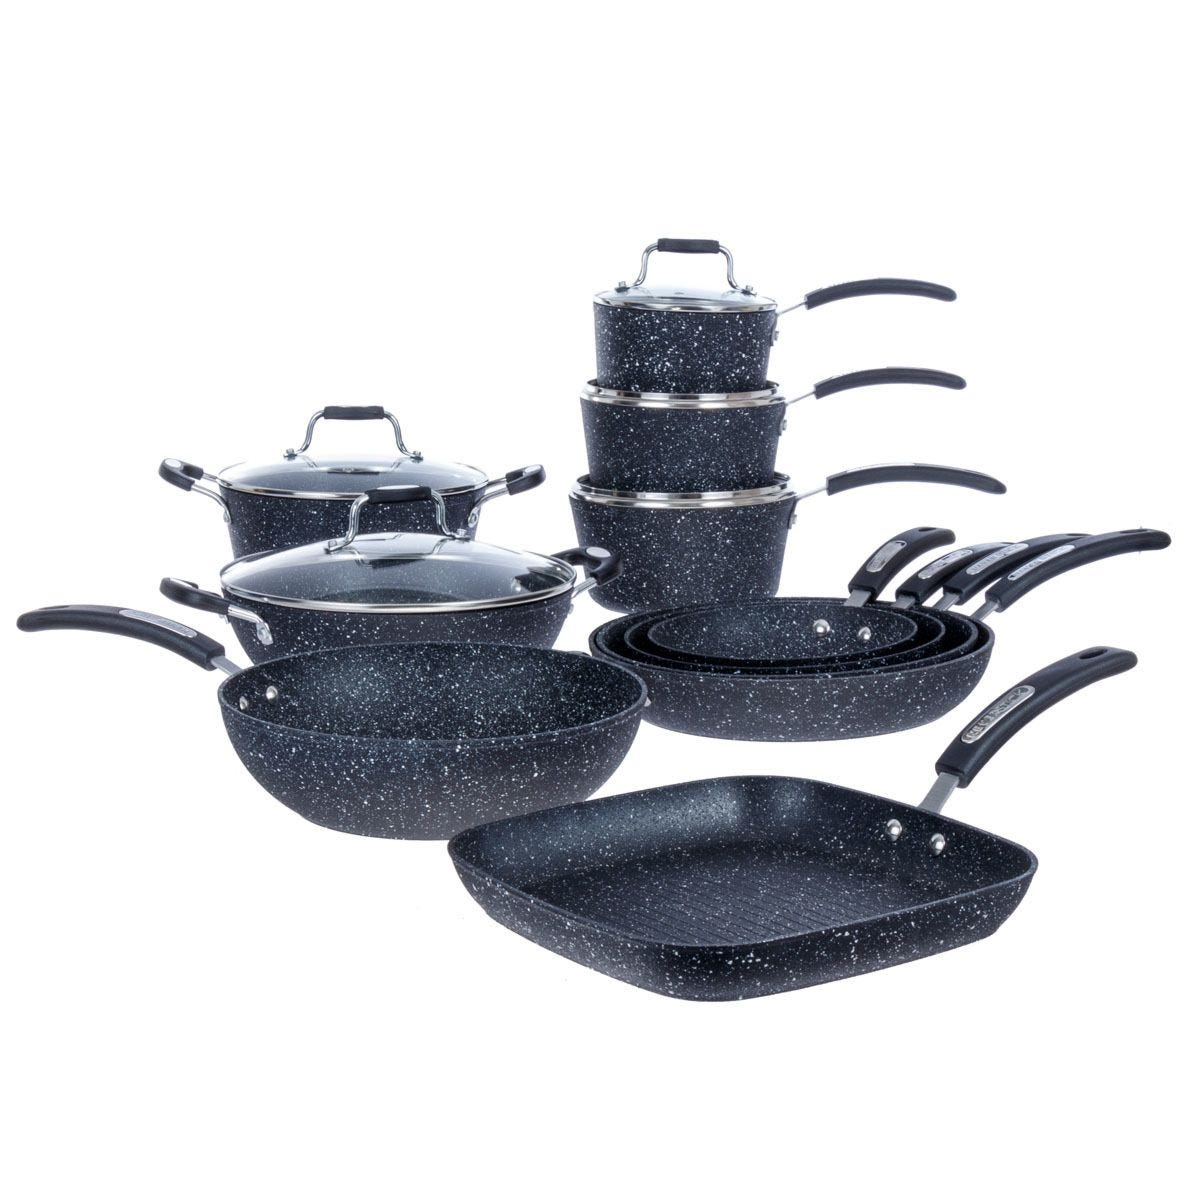 Scoville Neverstick 11-Piece Pan Set